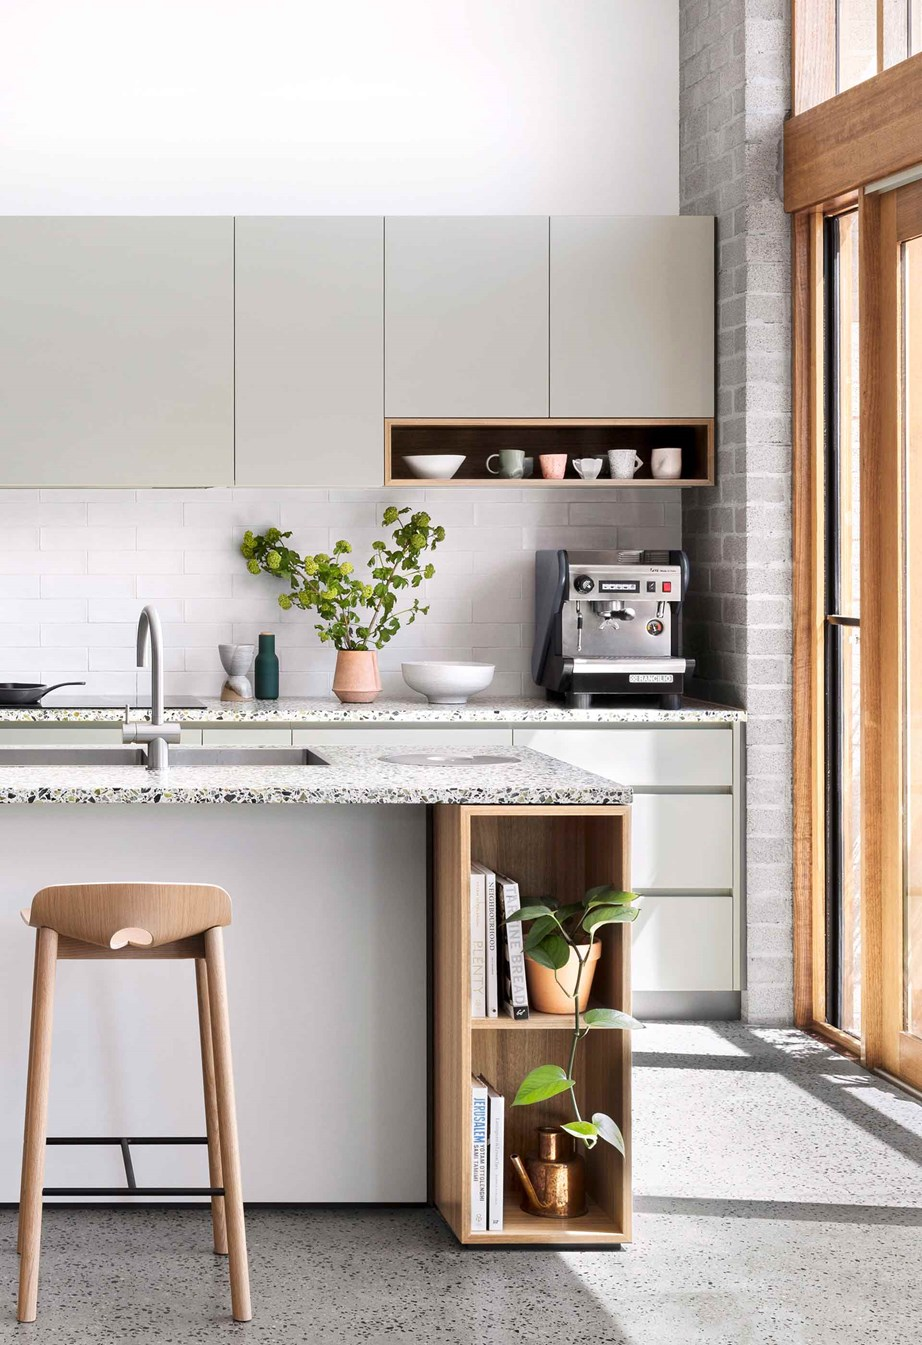 A custom shelf above this coffee machine allow easy access to cups while adding character to the kitchen.